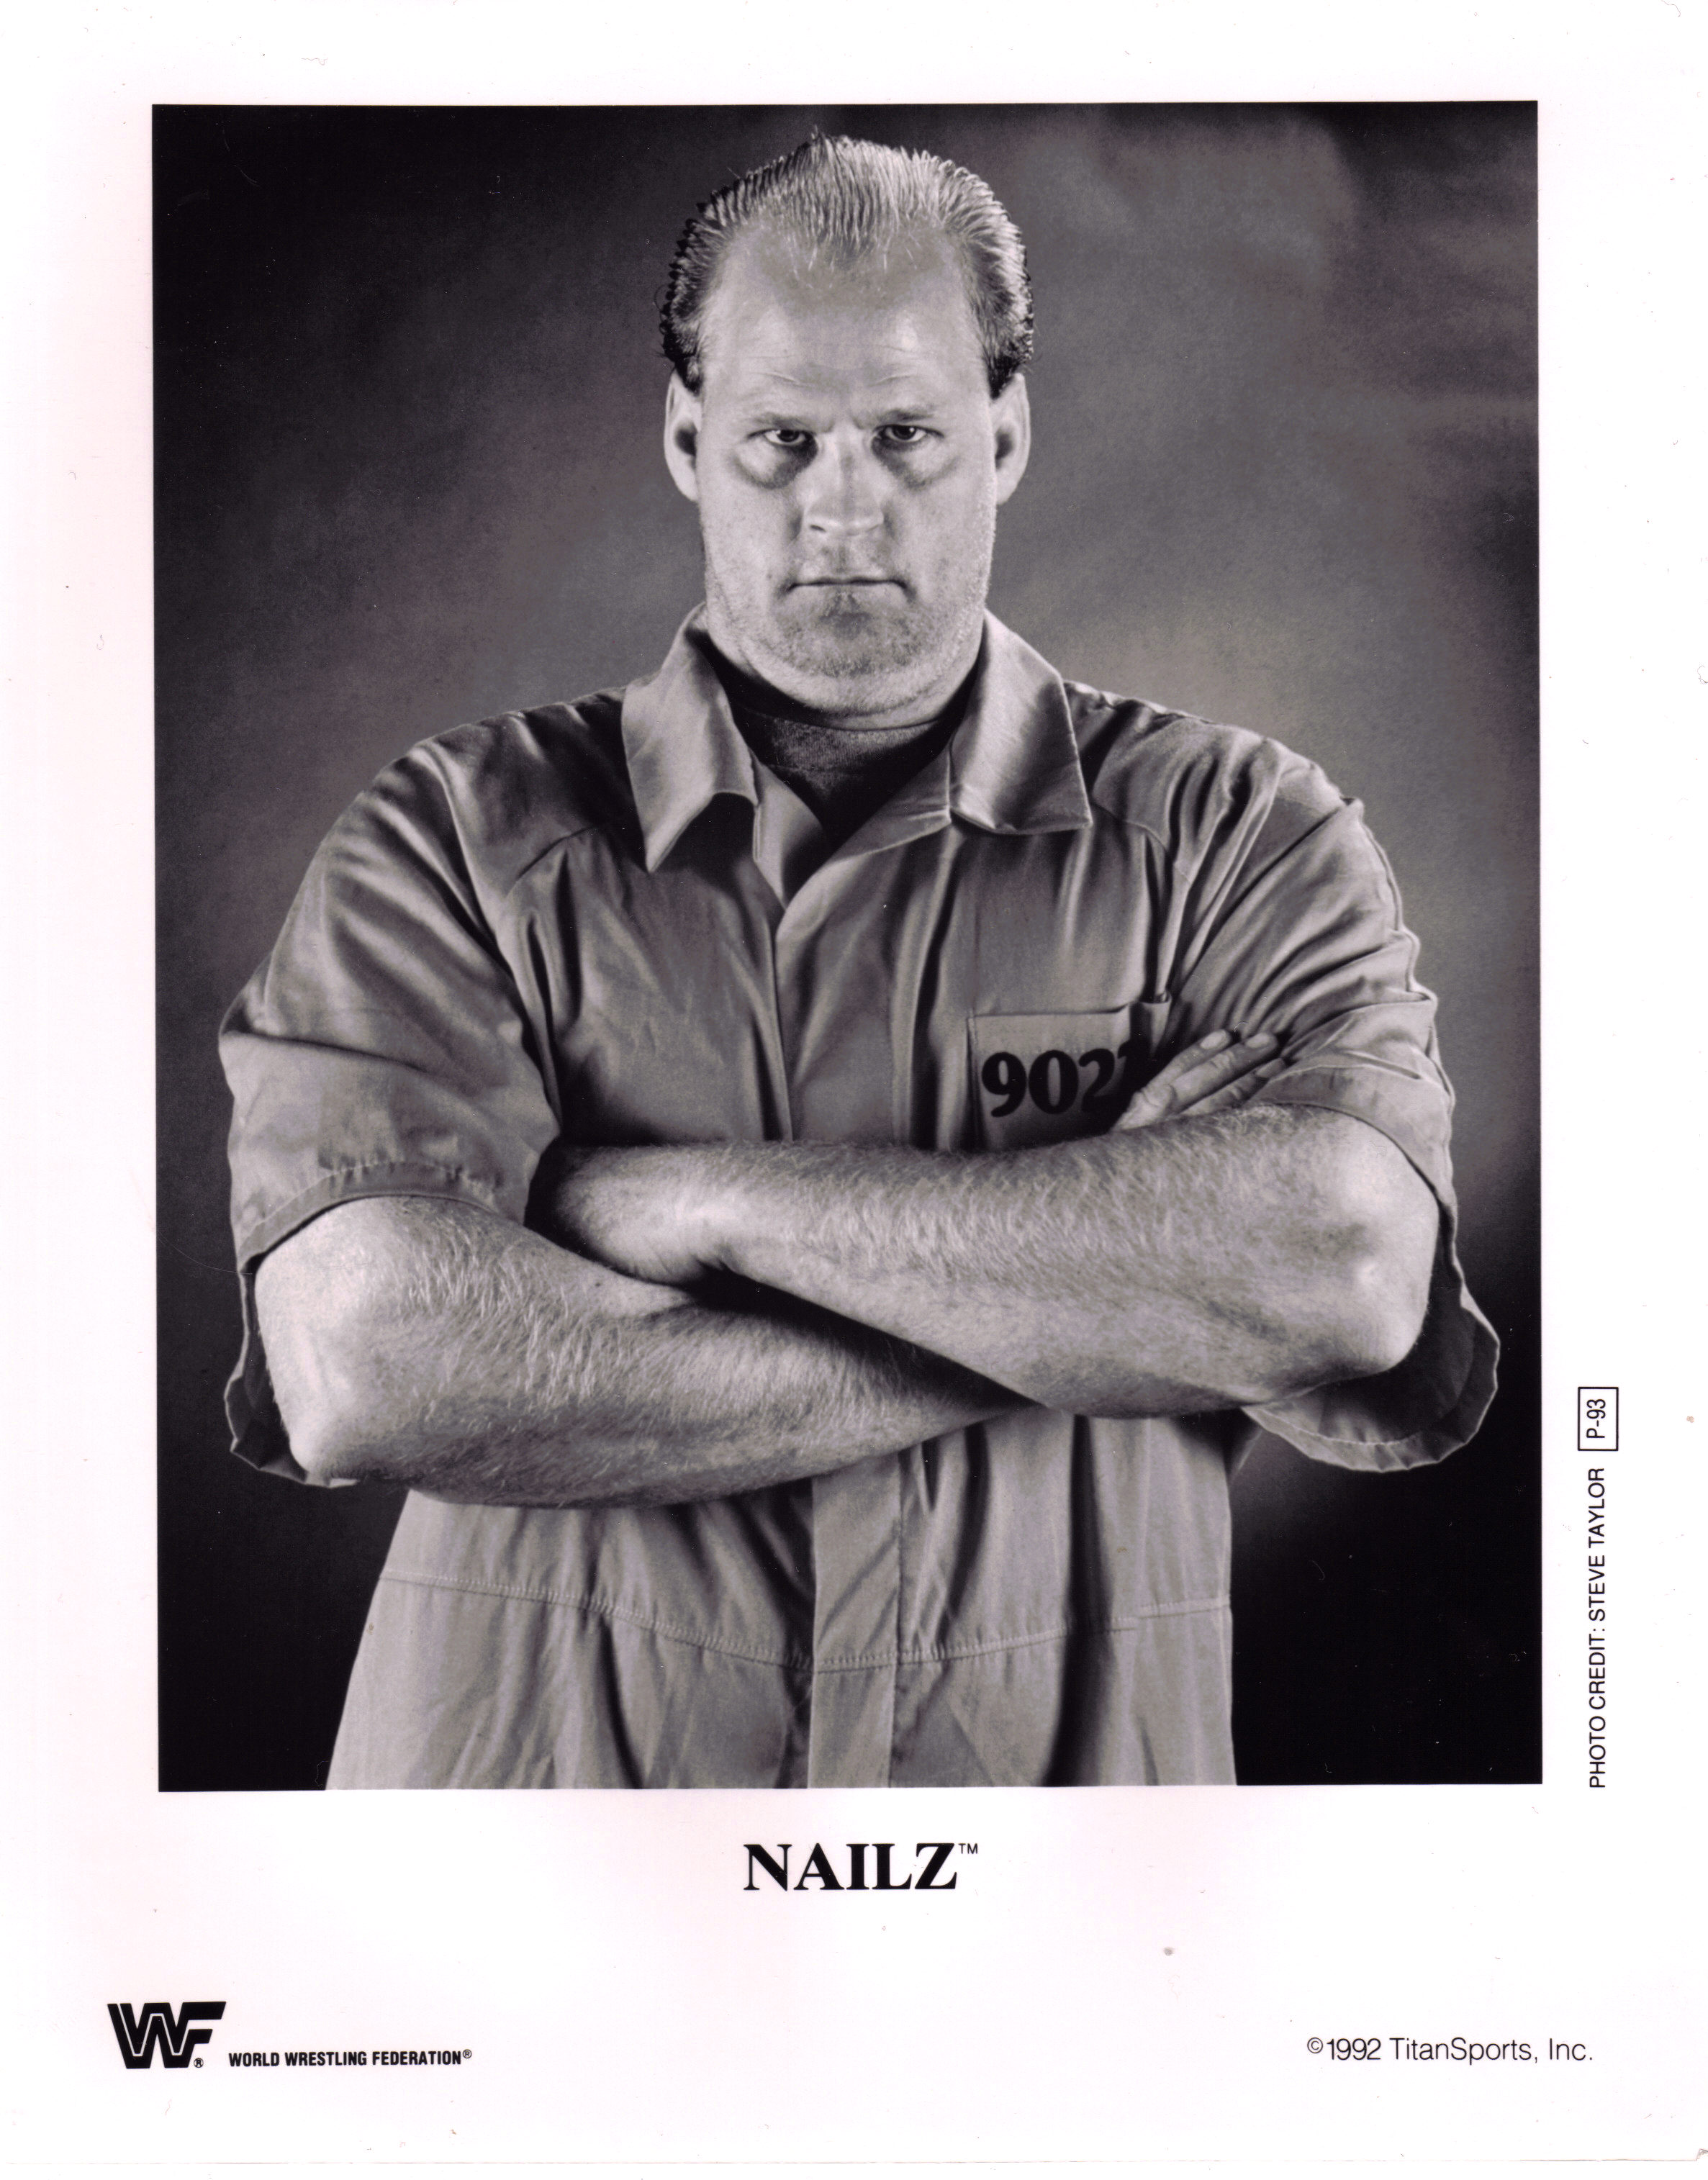 WWF Nailz 8x10 promotional photo